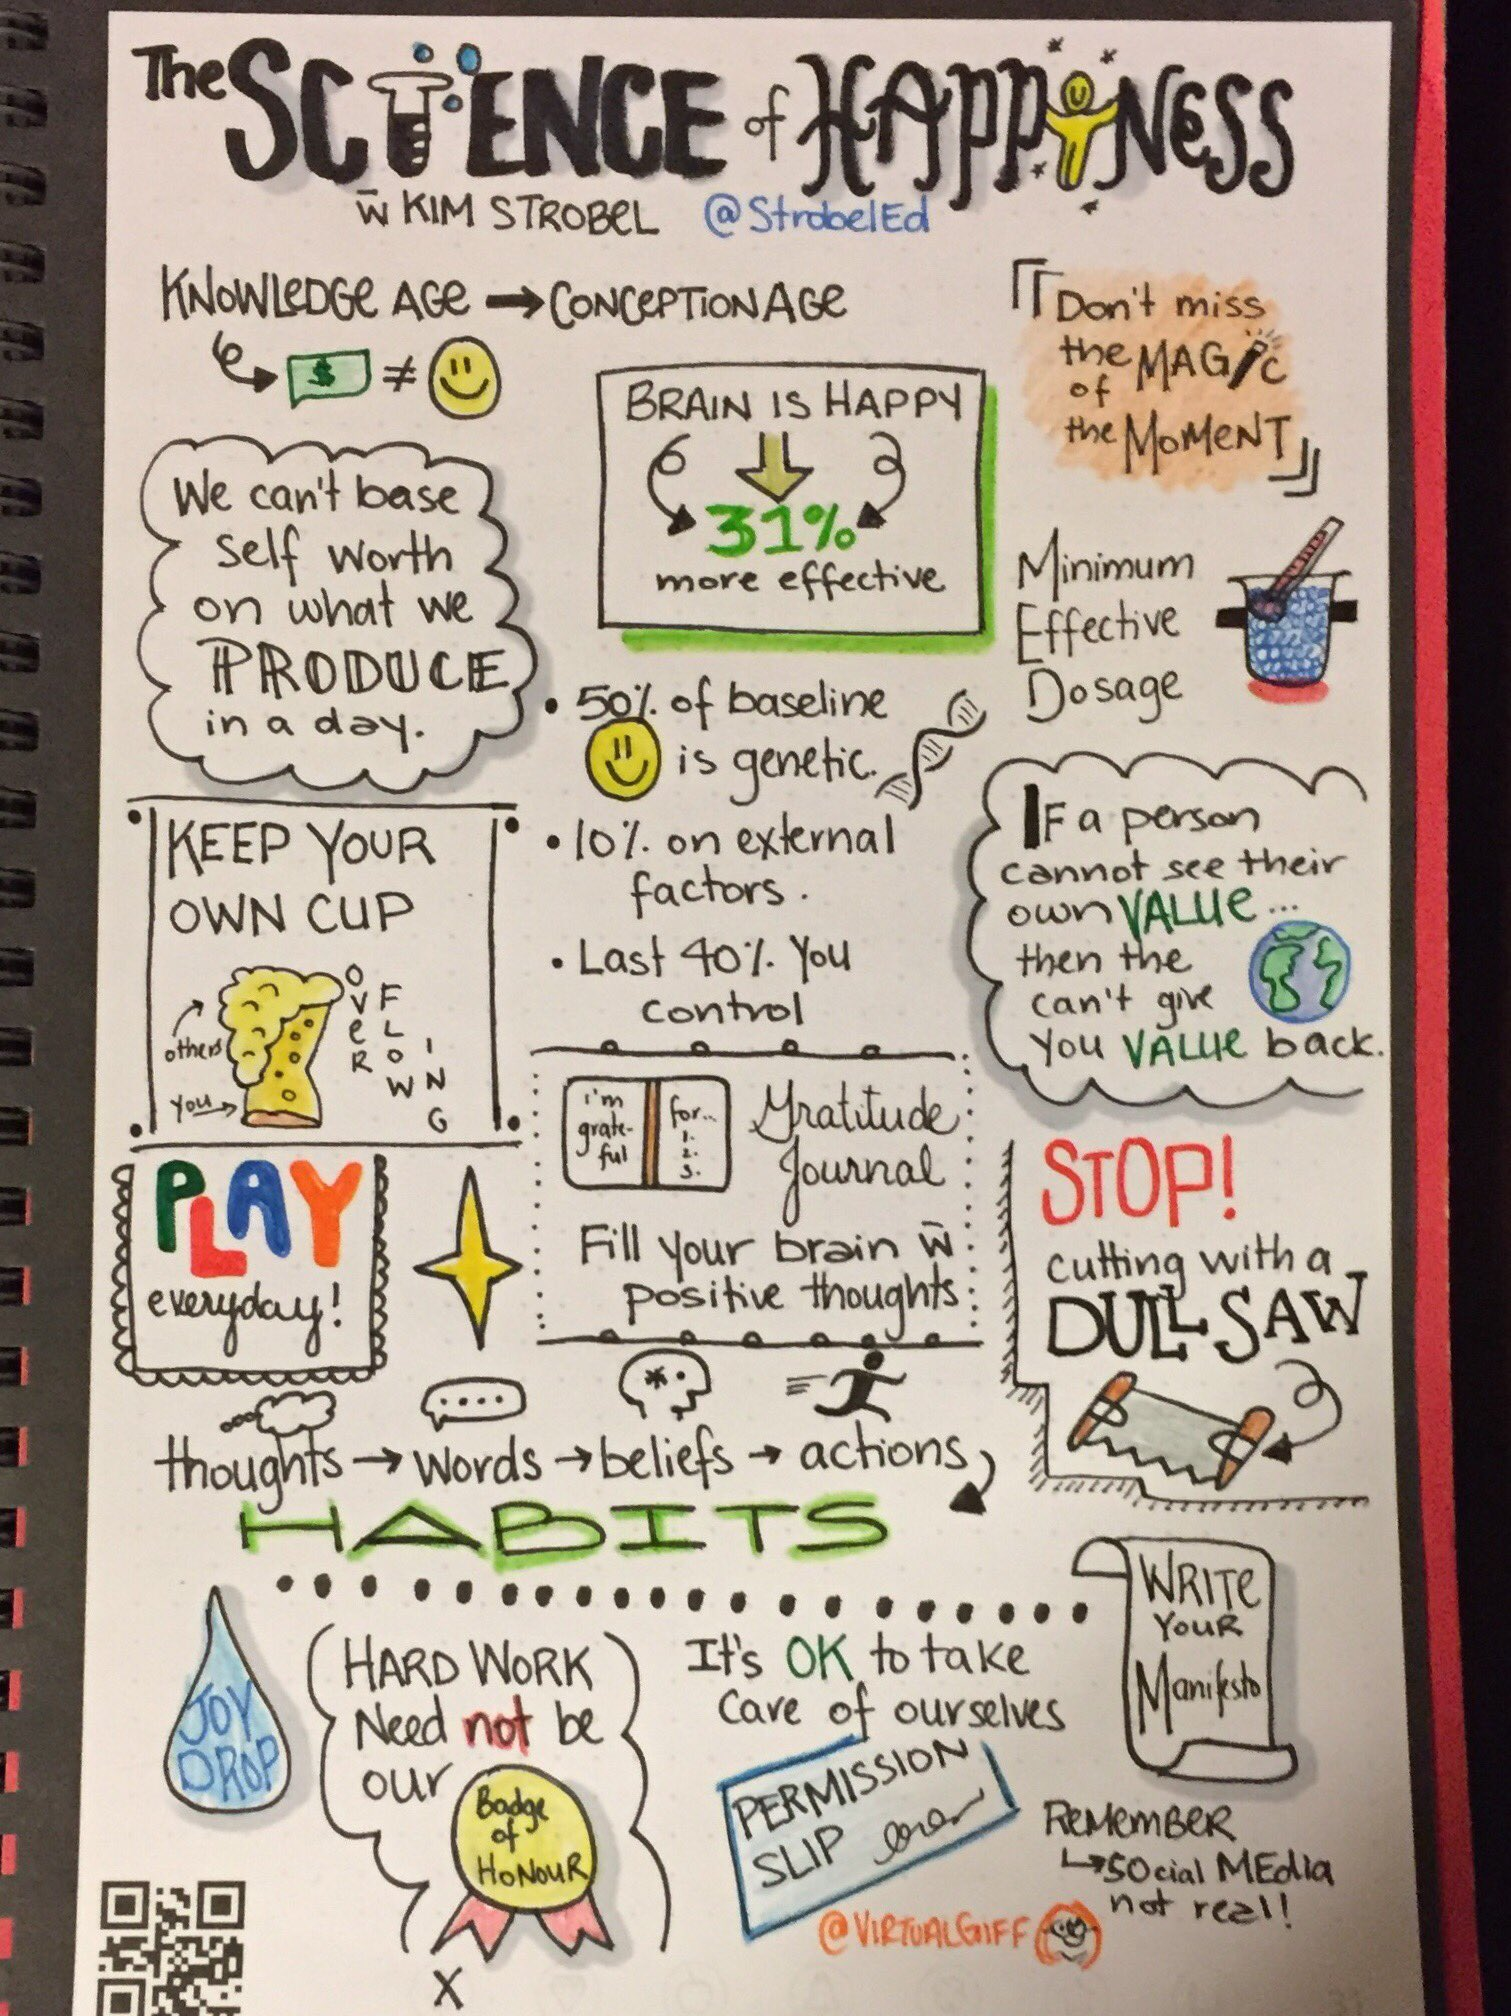 #DitchSummit day 2. The Science of Happiness with @strobeled #sketchnote #sketchnoting @jmattmiller https://t.co/e0jvCQxGtM